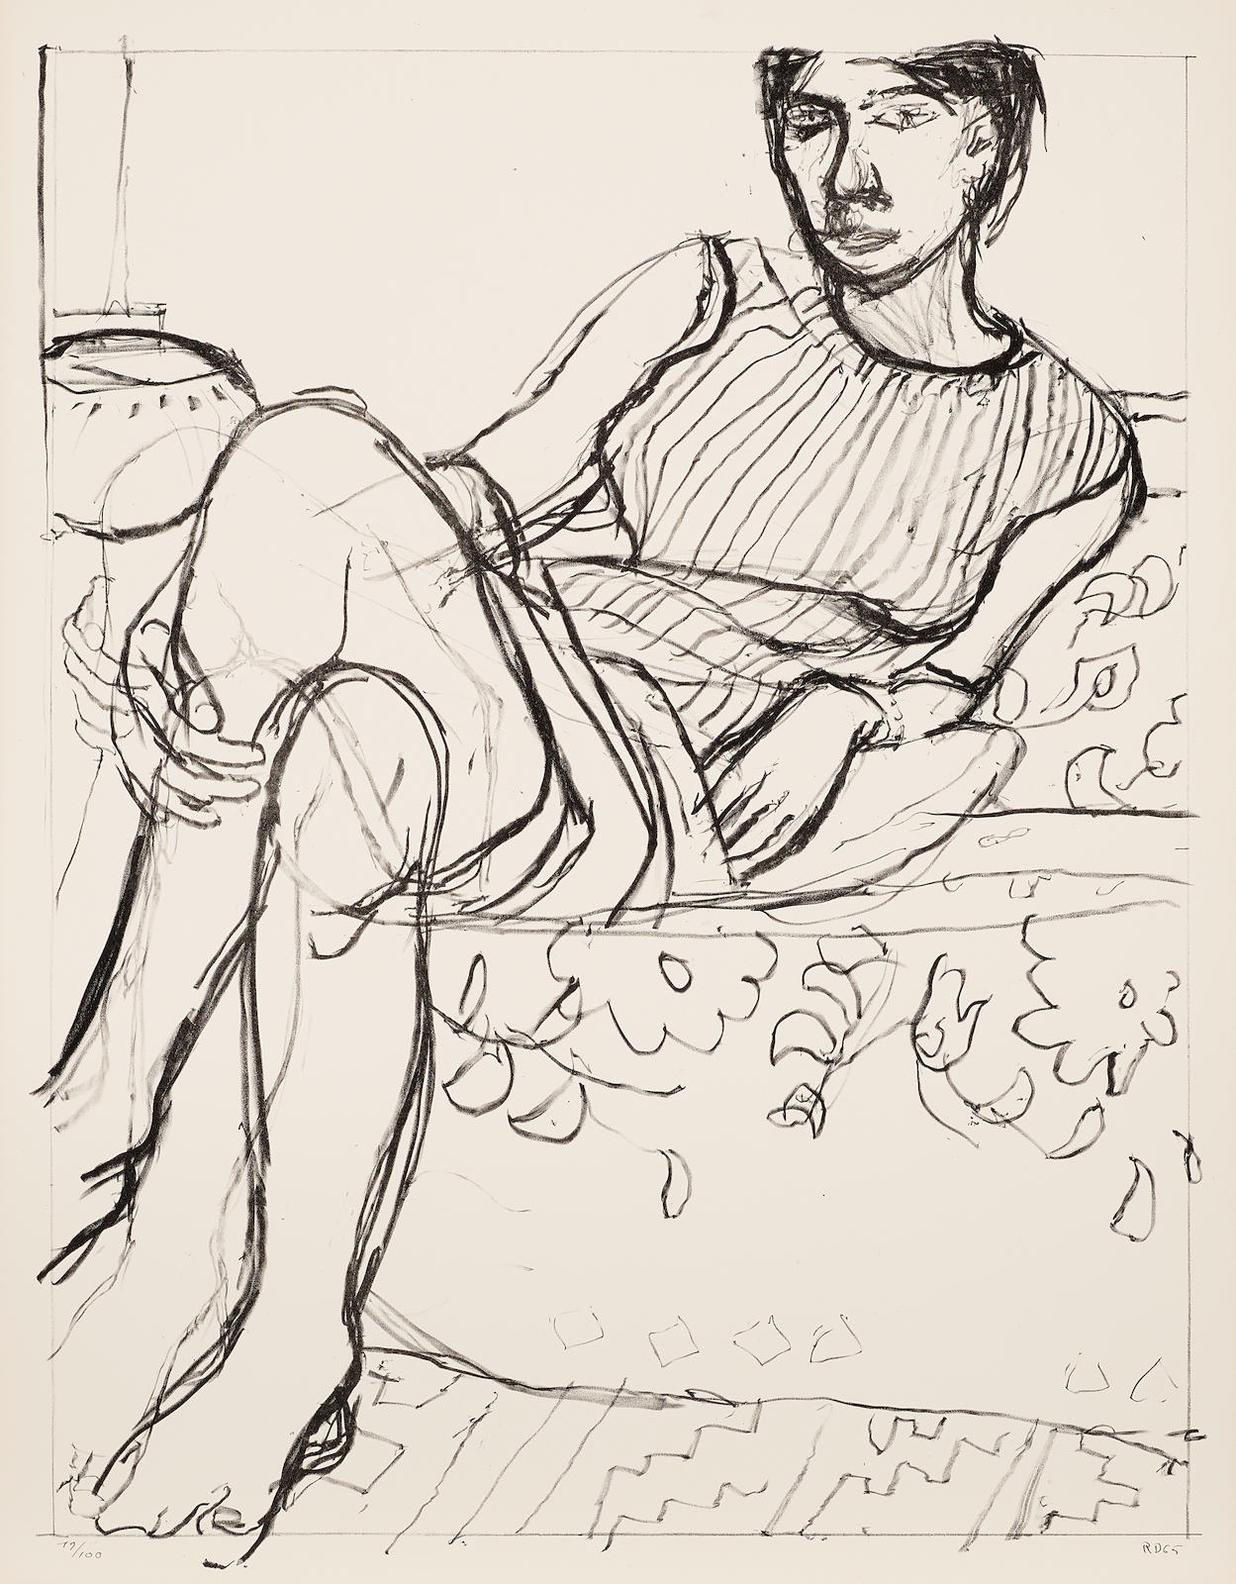 Richard Diebenkorn-Seated Woman In Striped Dress, From Seated Woman Series-1965